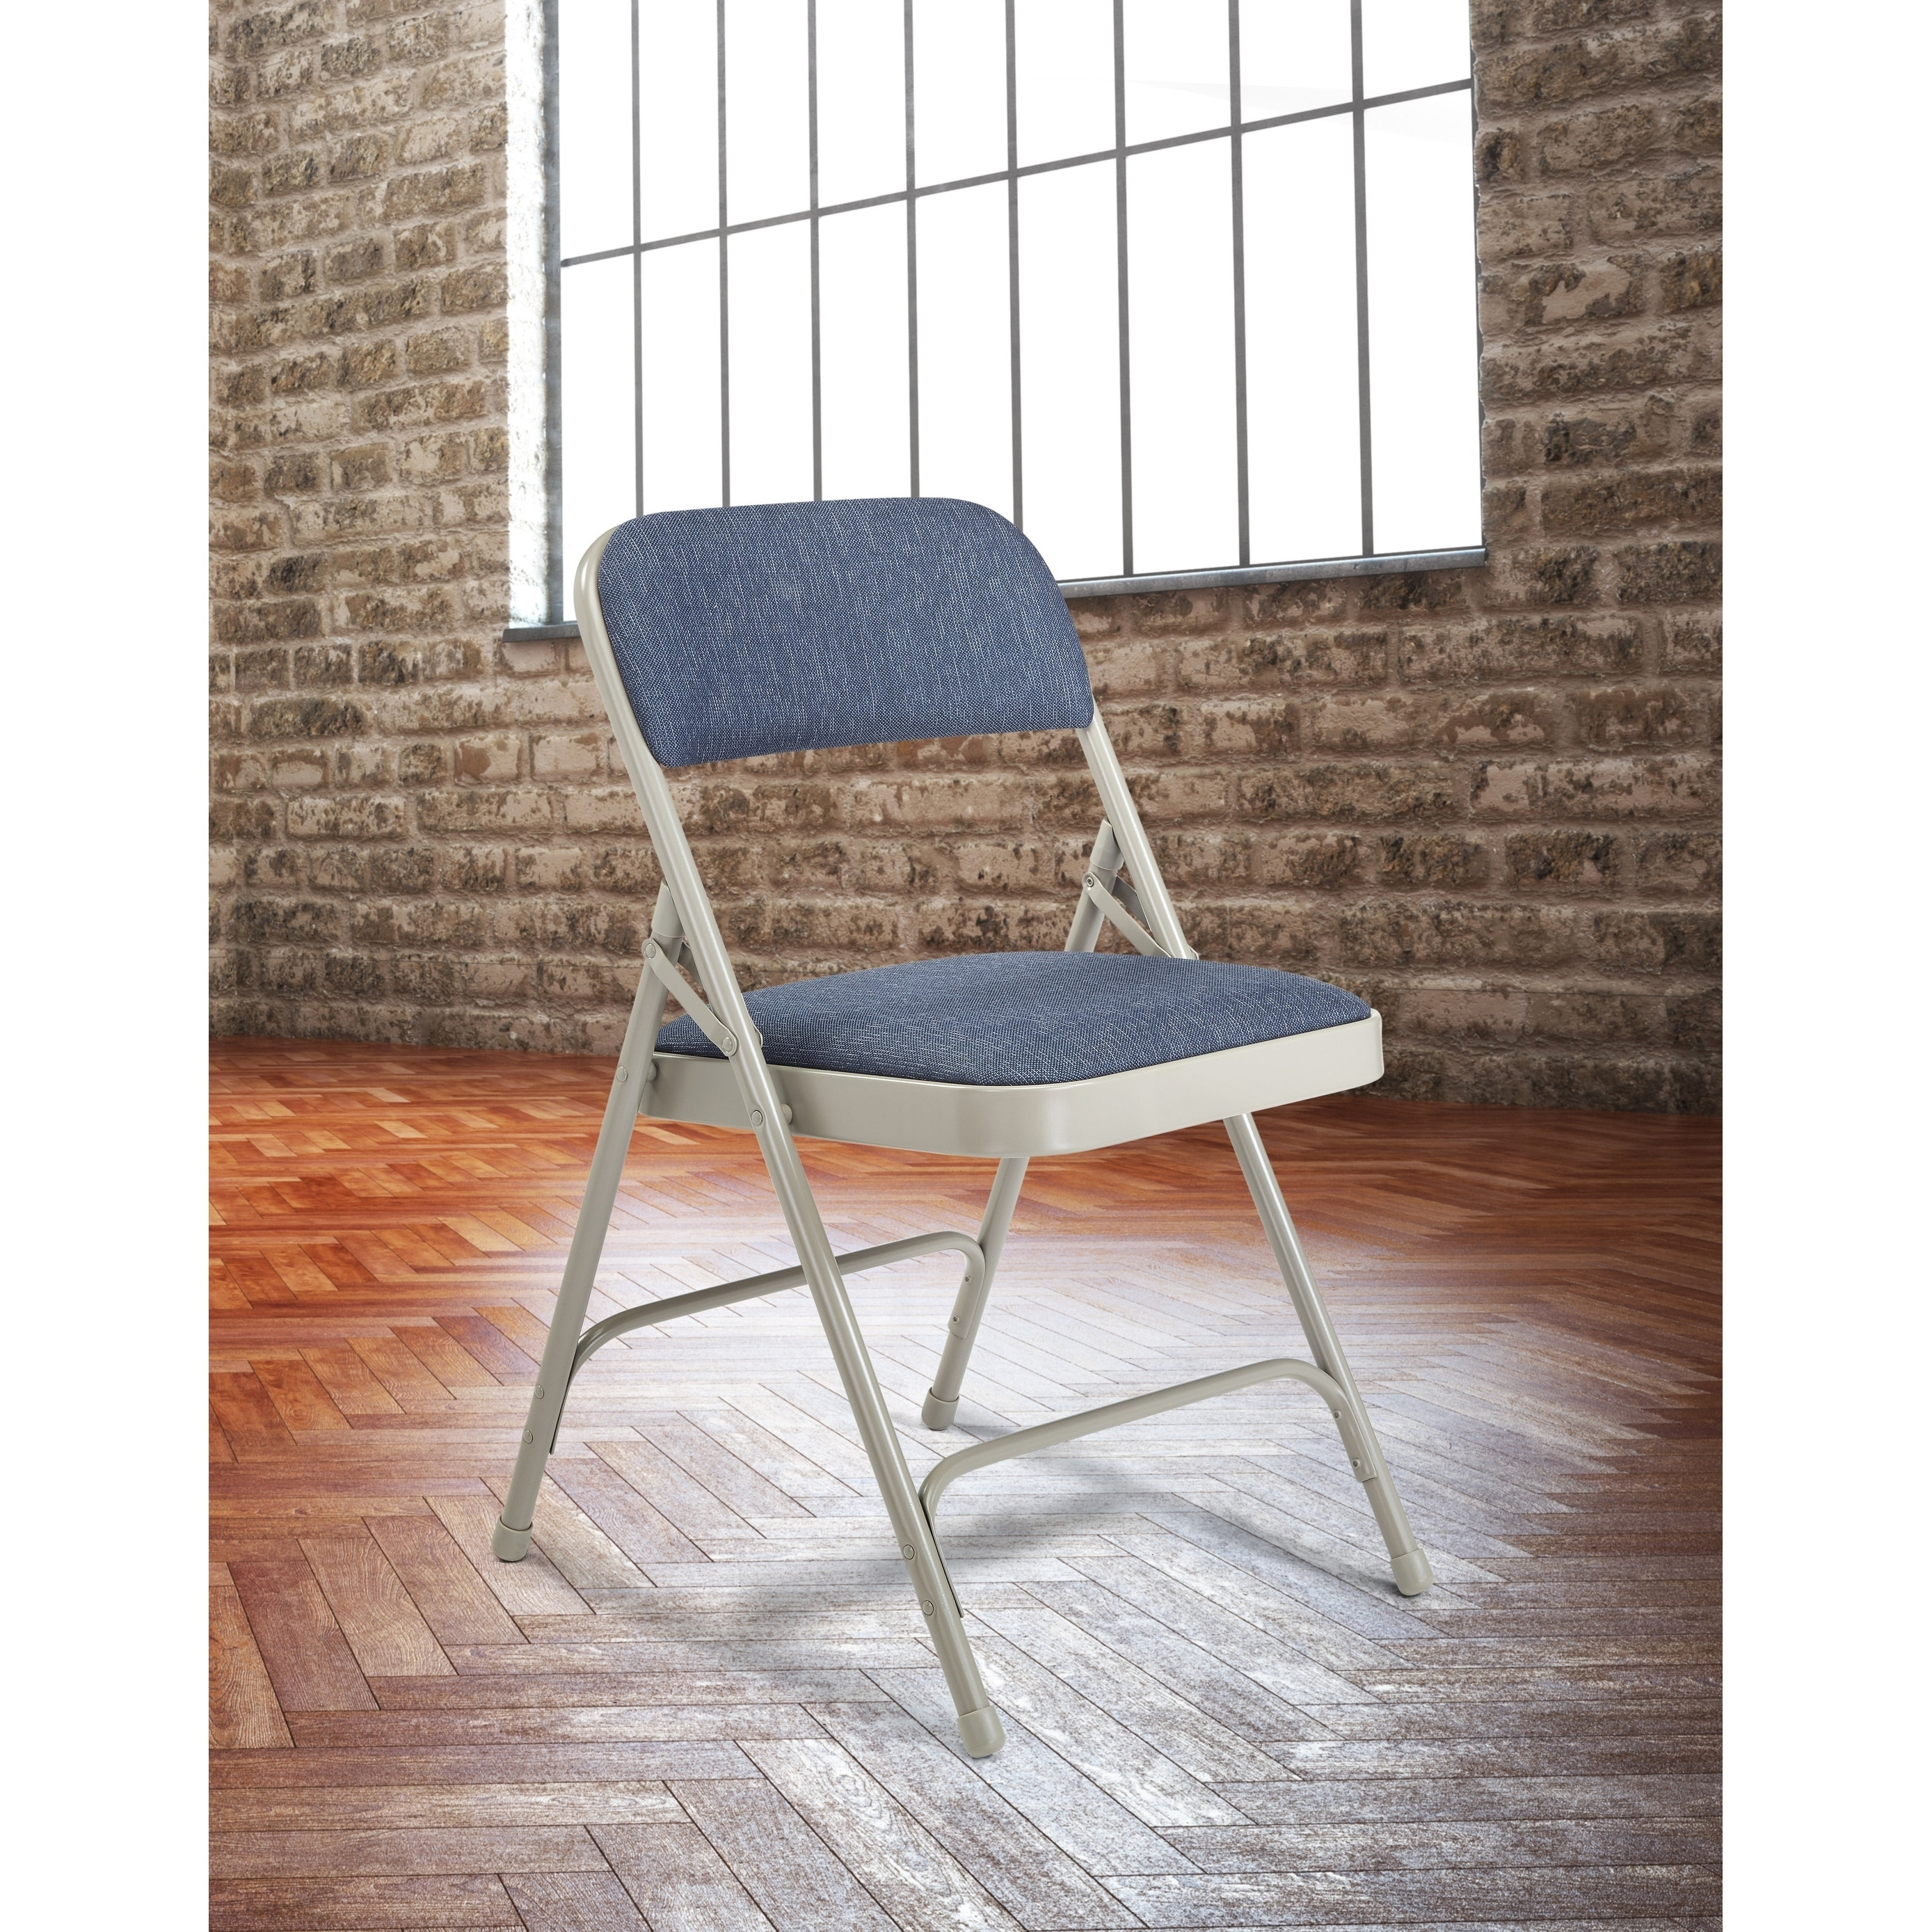 Nps Fabric Upholstered Premium Folding Chairs Pack Of 4 Free Shipping Today 4662058